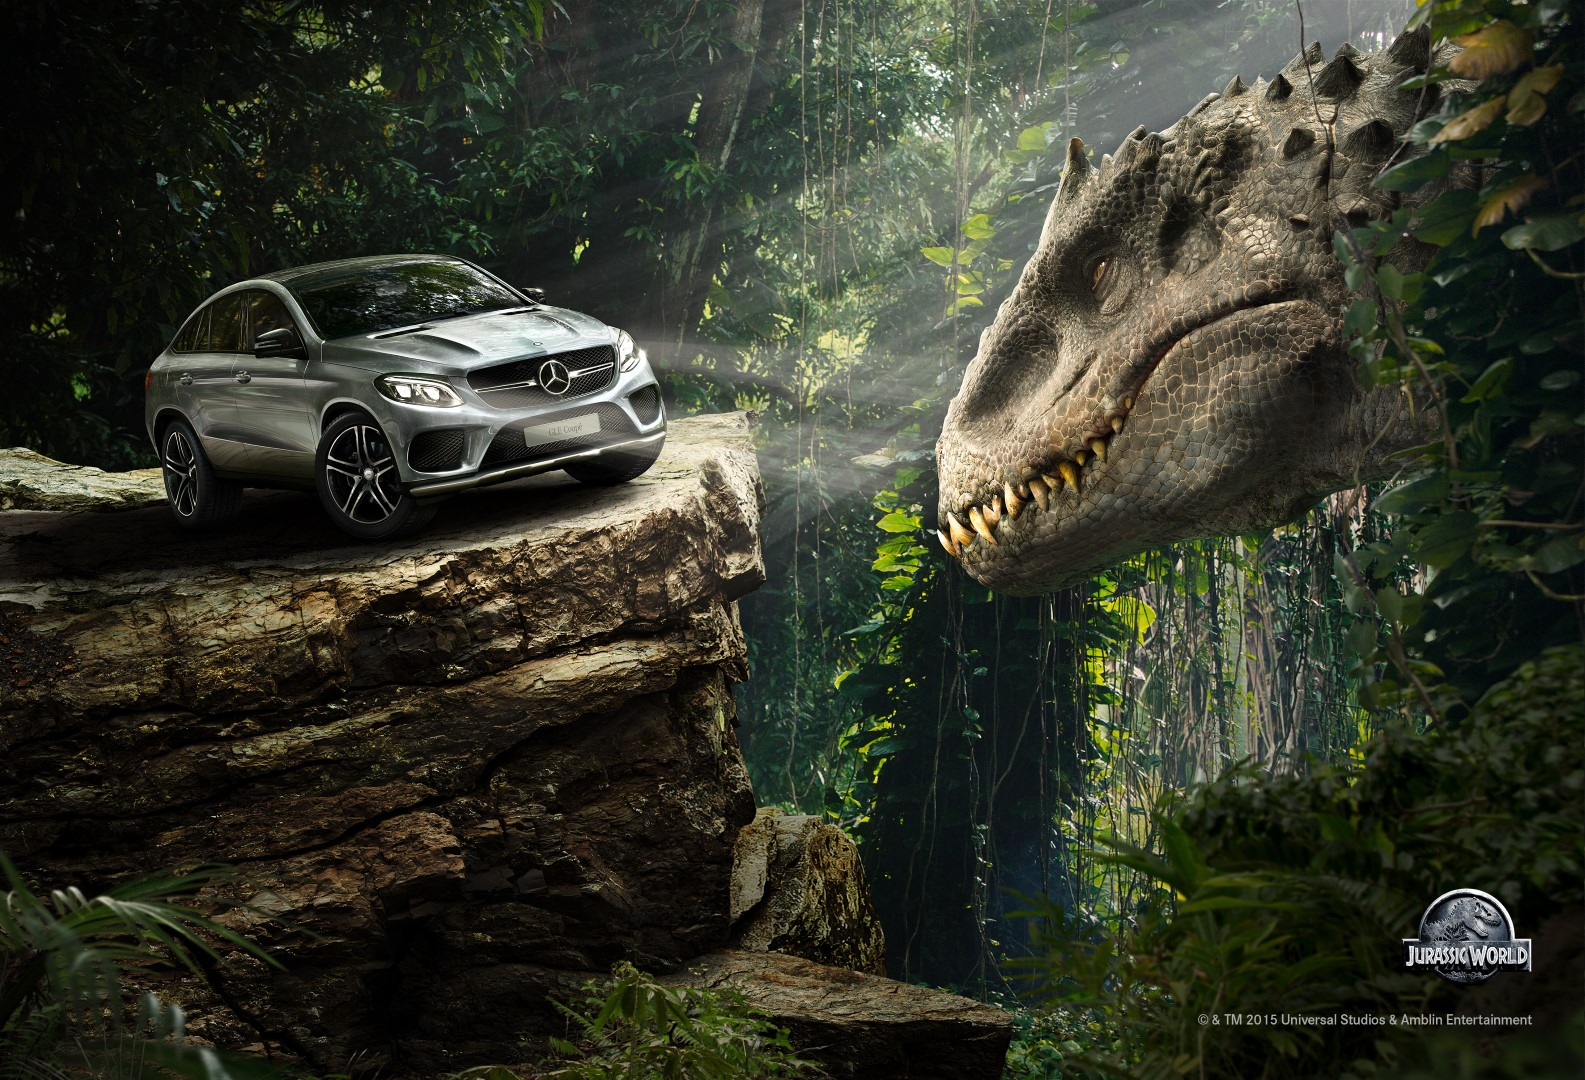 Alpha Car, the new Mercedes-Benz GLE Coupé in Jurassic World  Photo: Mercedes-Benz